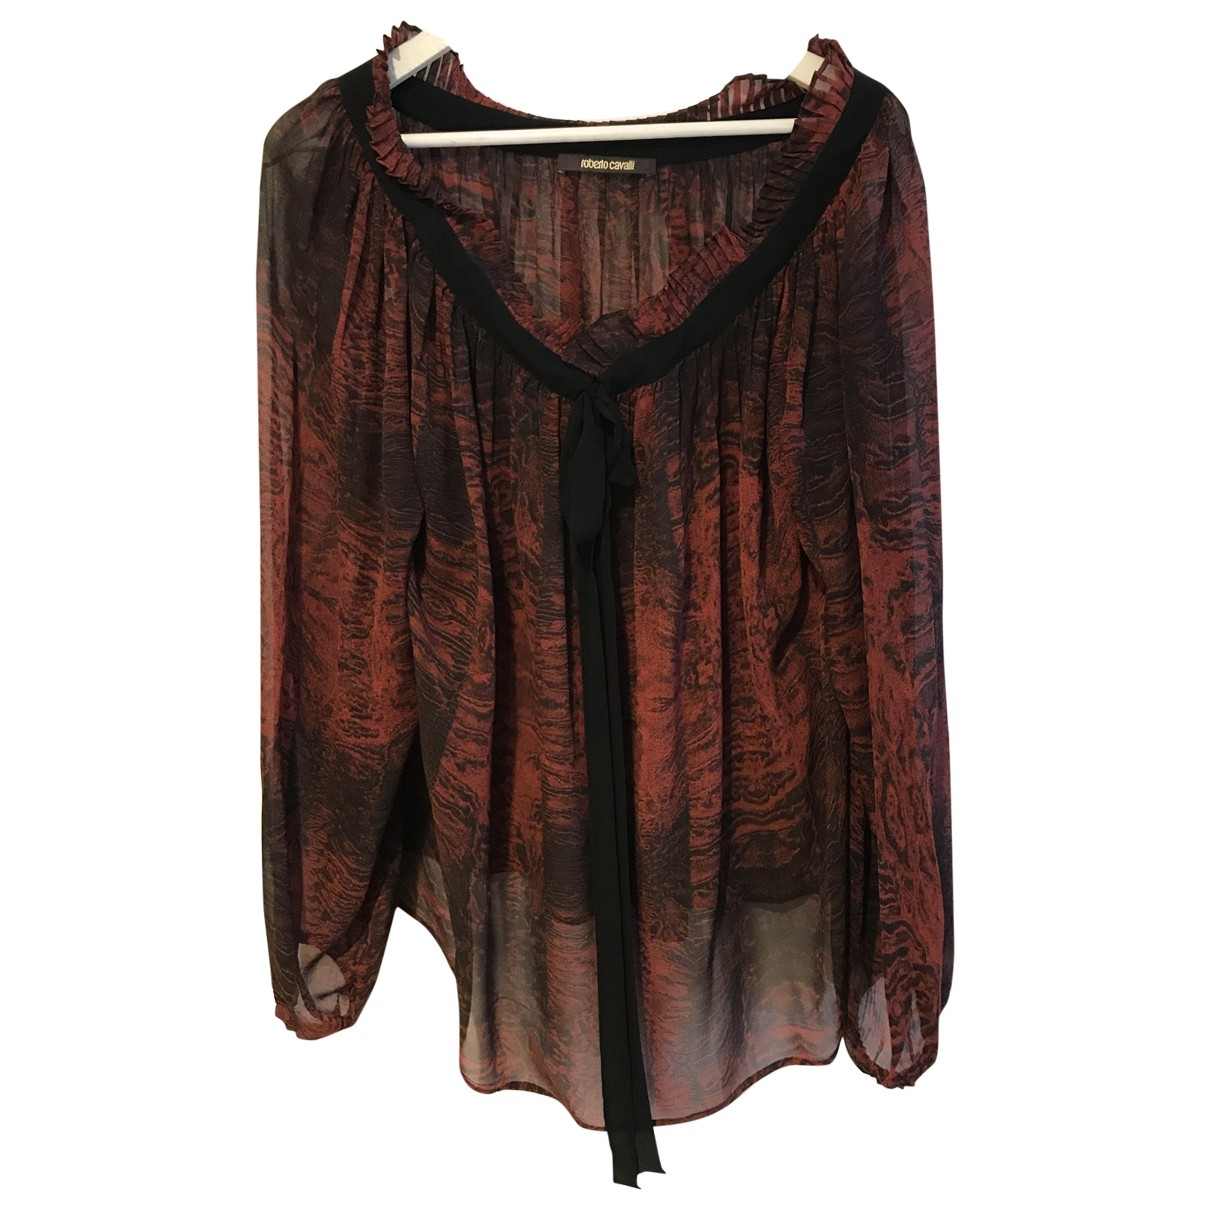 Roberto Cavalli \N Multicolour Silk  top for Women One Size IT